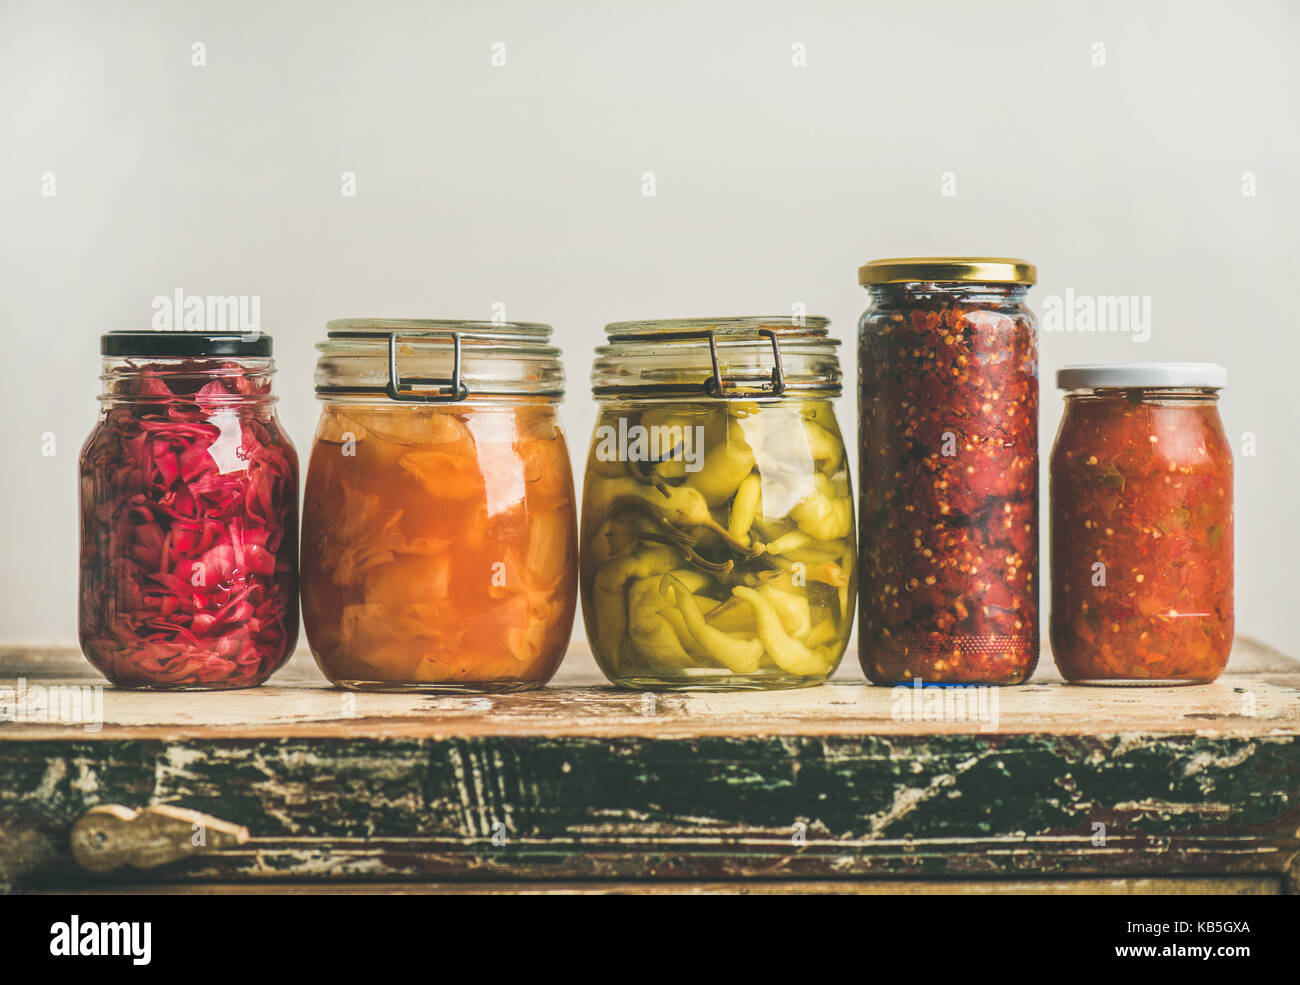 Autumn pickled colorful vegetables in jars placed in row - Stock Image